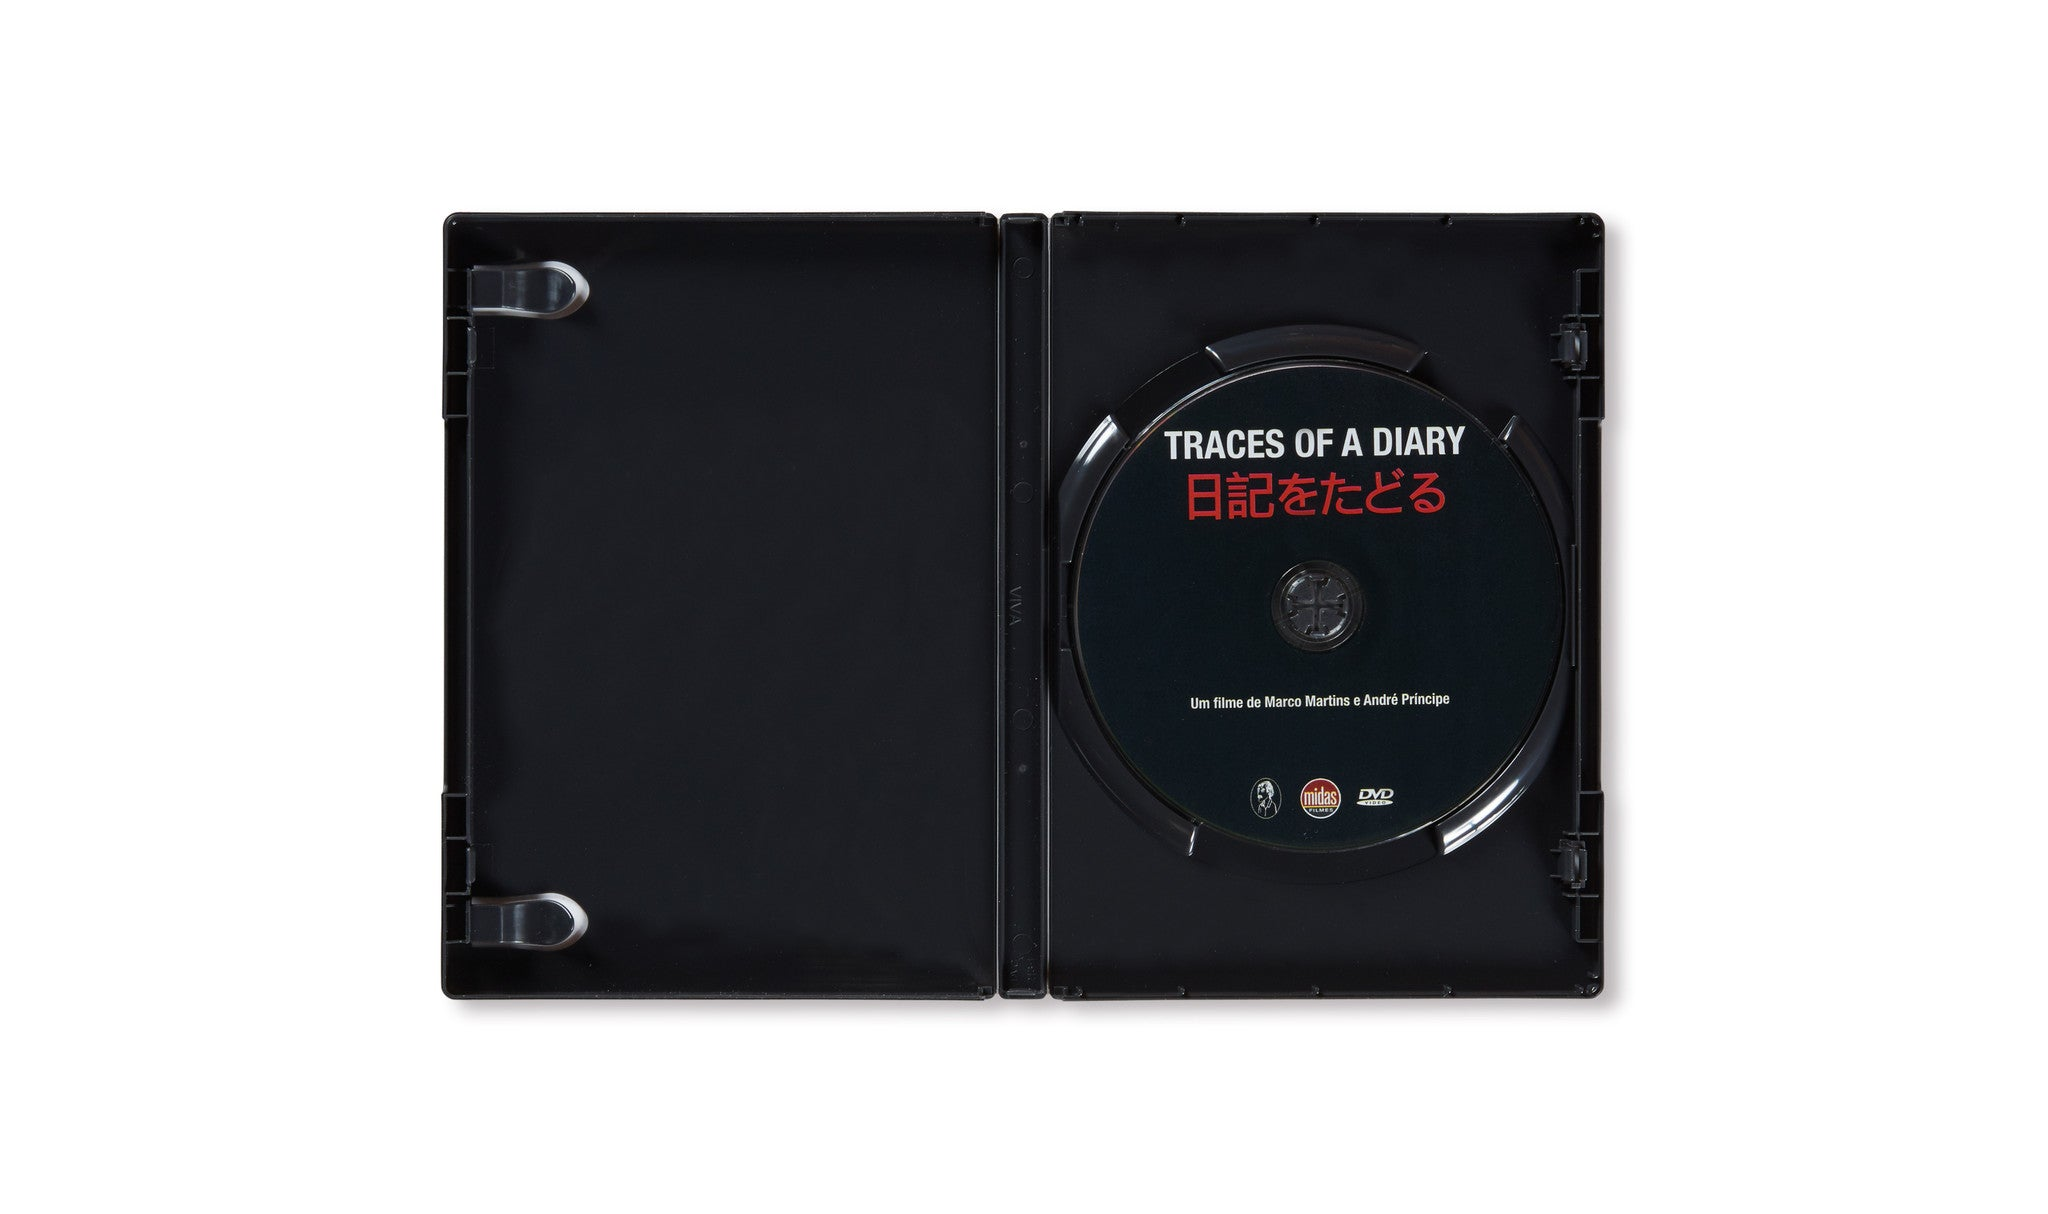 TRACES OF A DIARY – 日記をたどる by André Principe & Marco Martins [DVD]